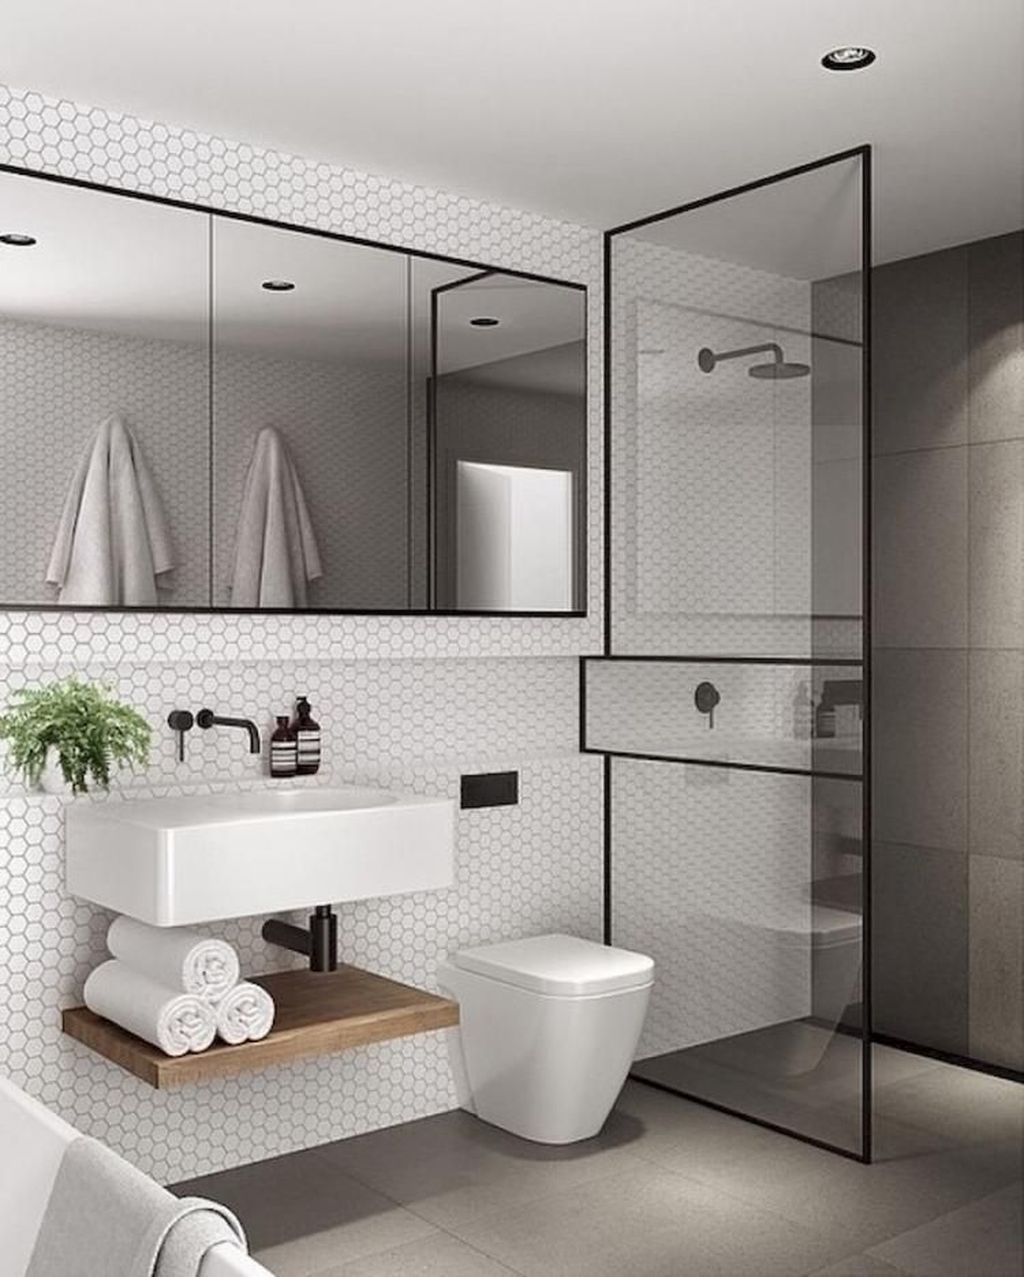 41 Stylish Small Master Bathroom Remodel Design Ideas Homystyle